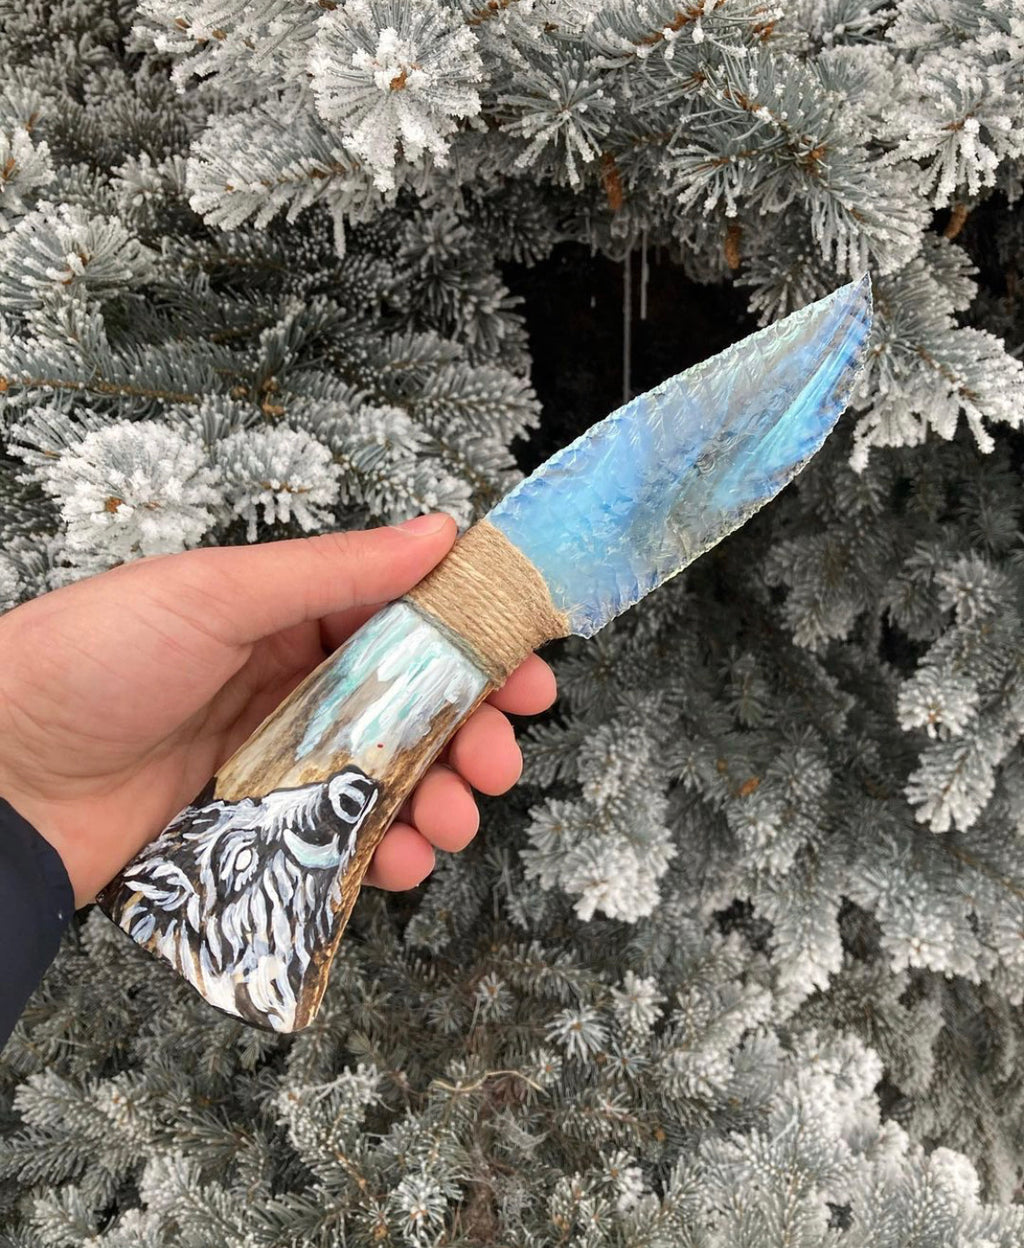 Moonstones Knife Limited II